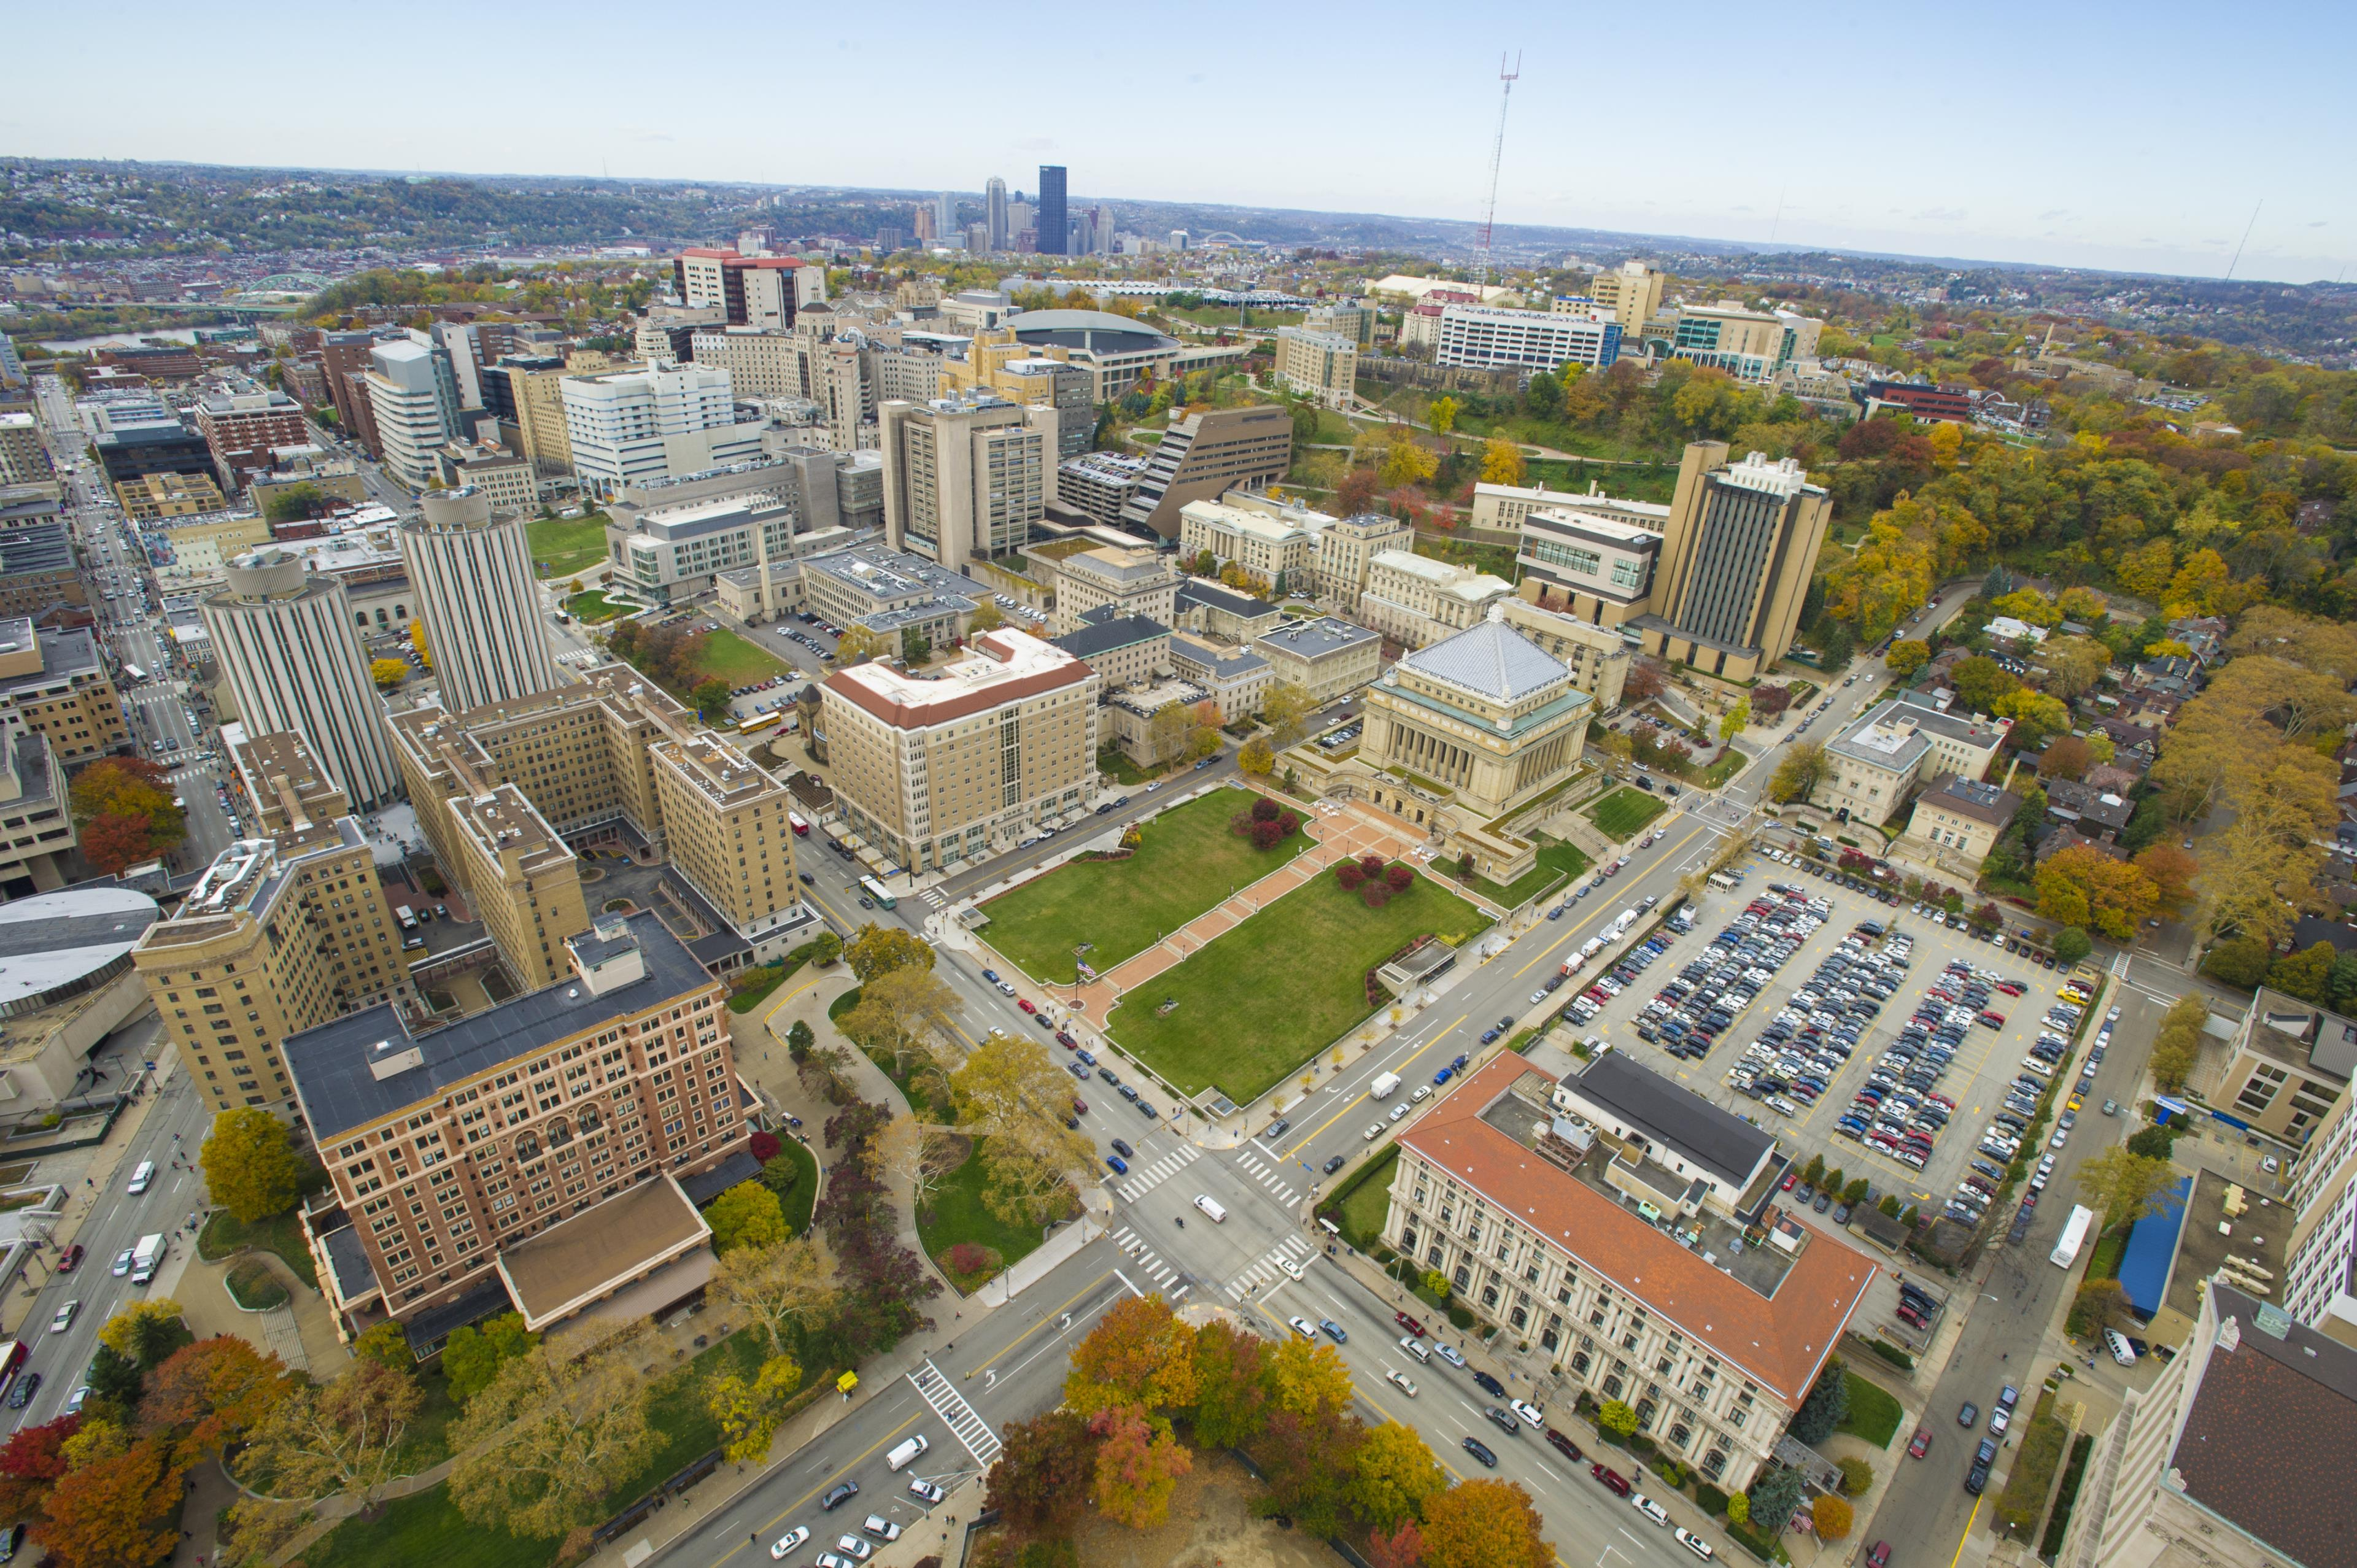 The Pitt Education Research Report - April 2021